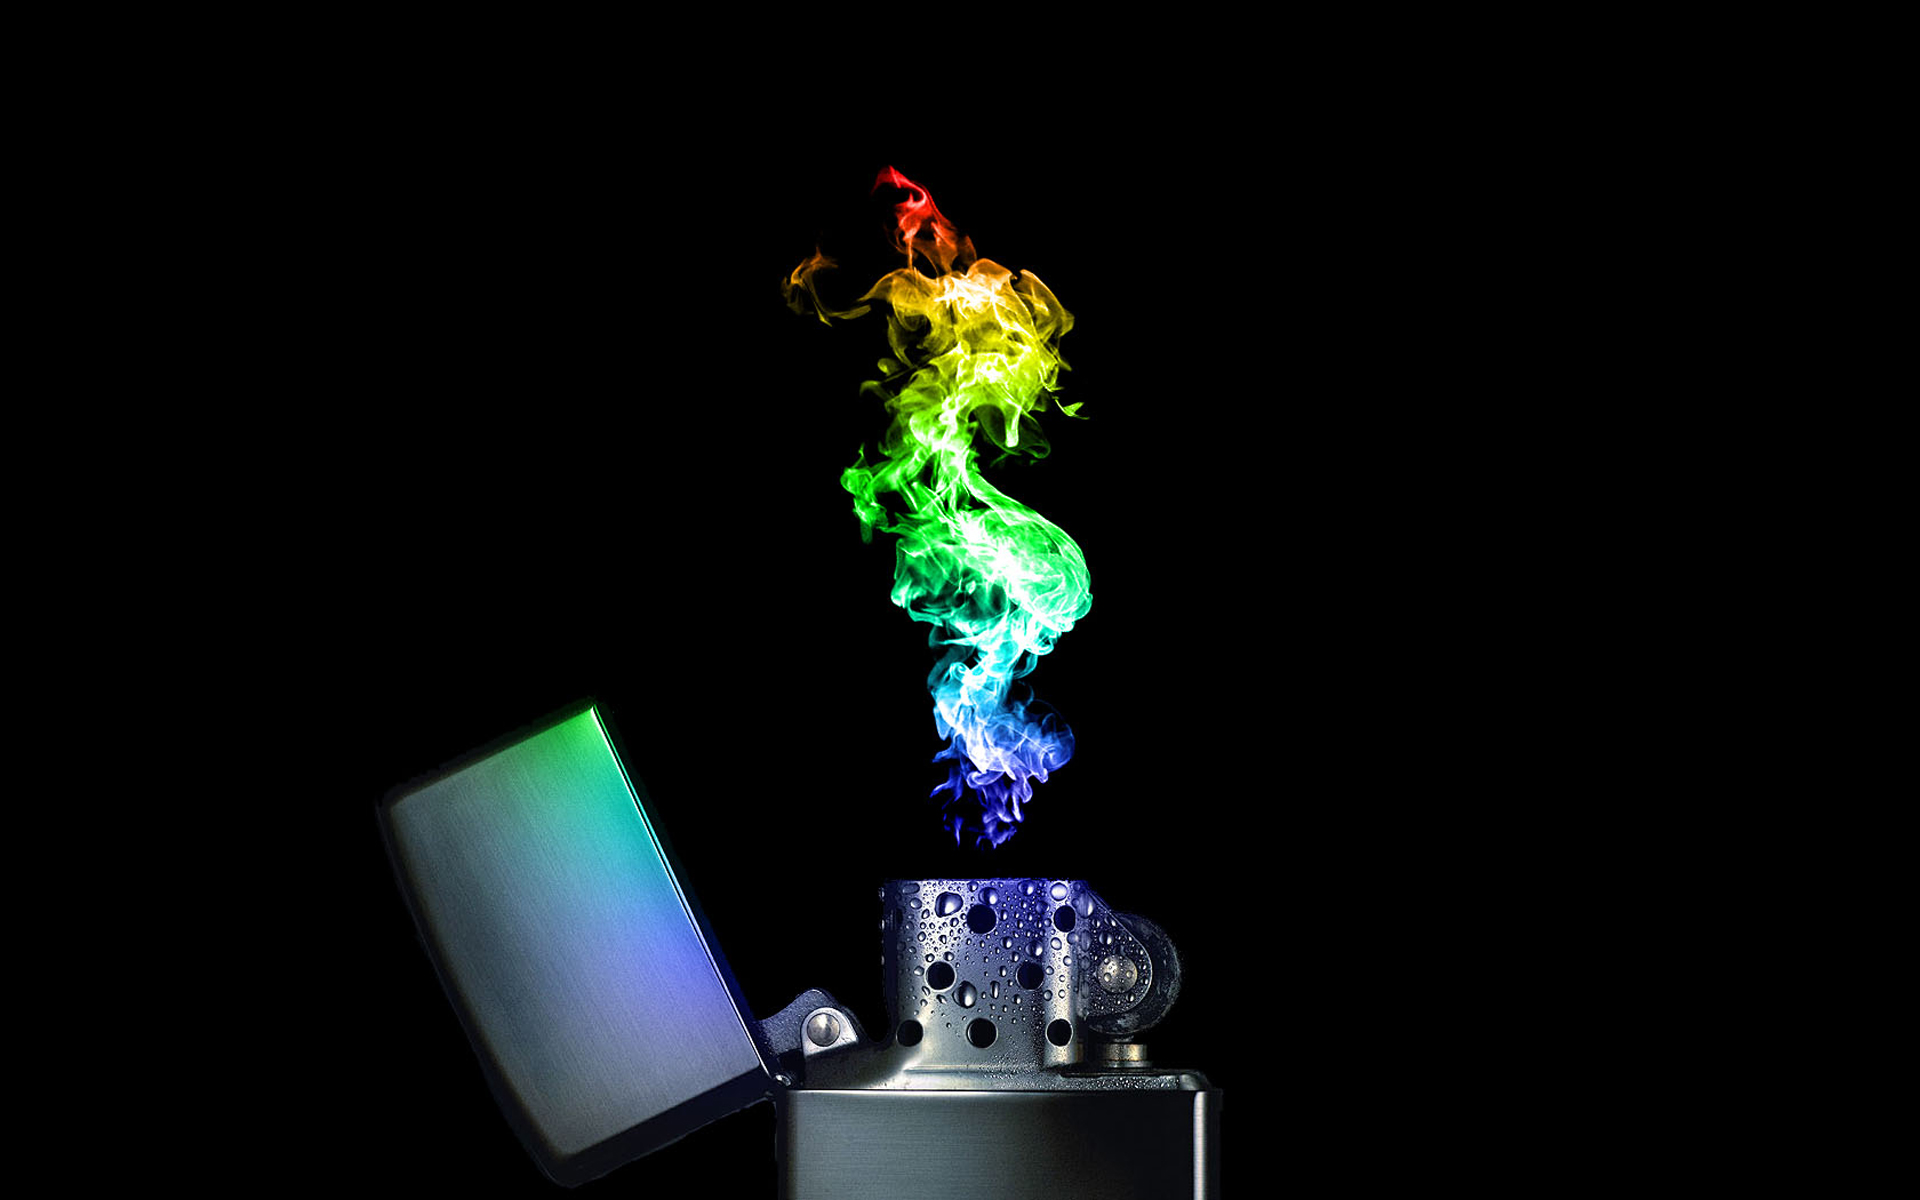 Lighter Flame Wallpaper